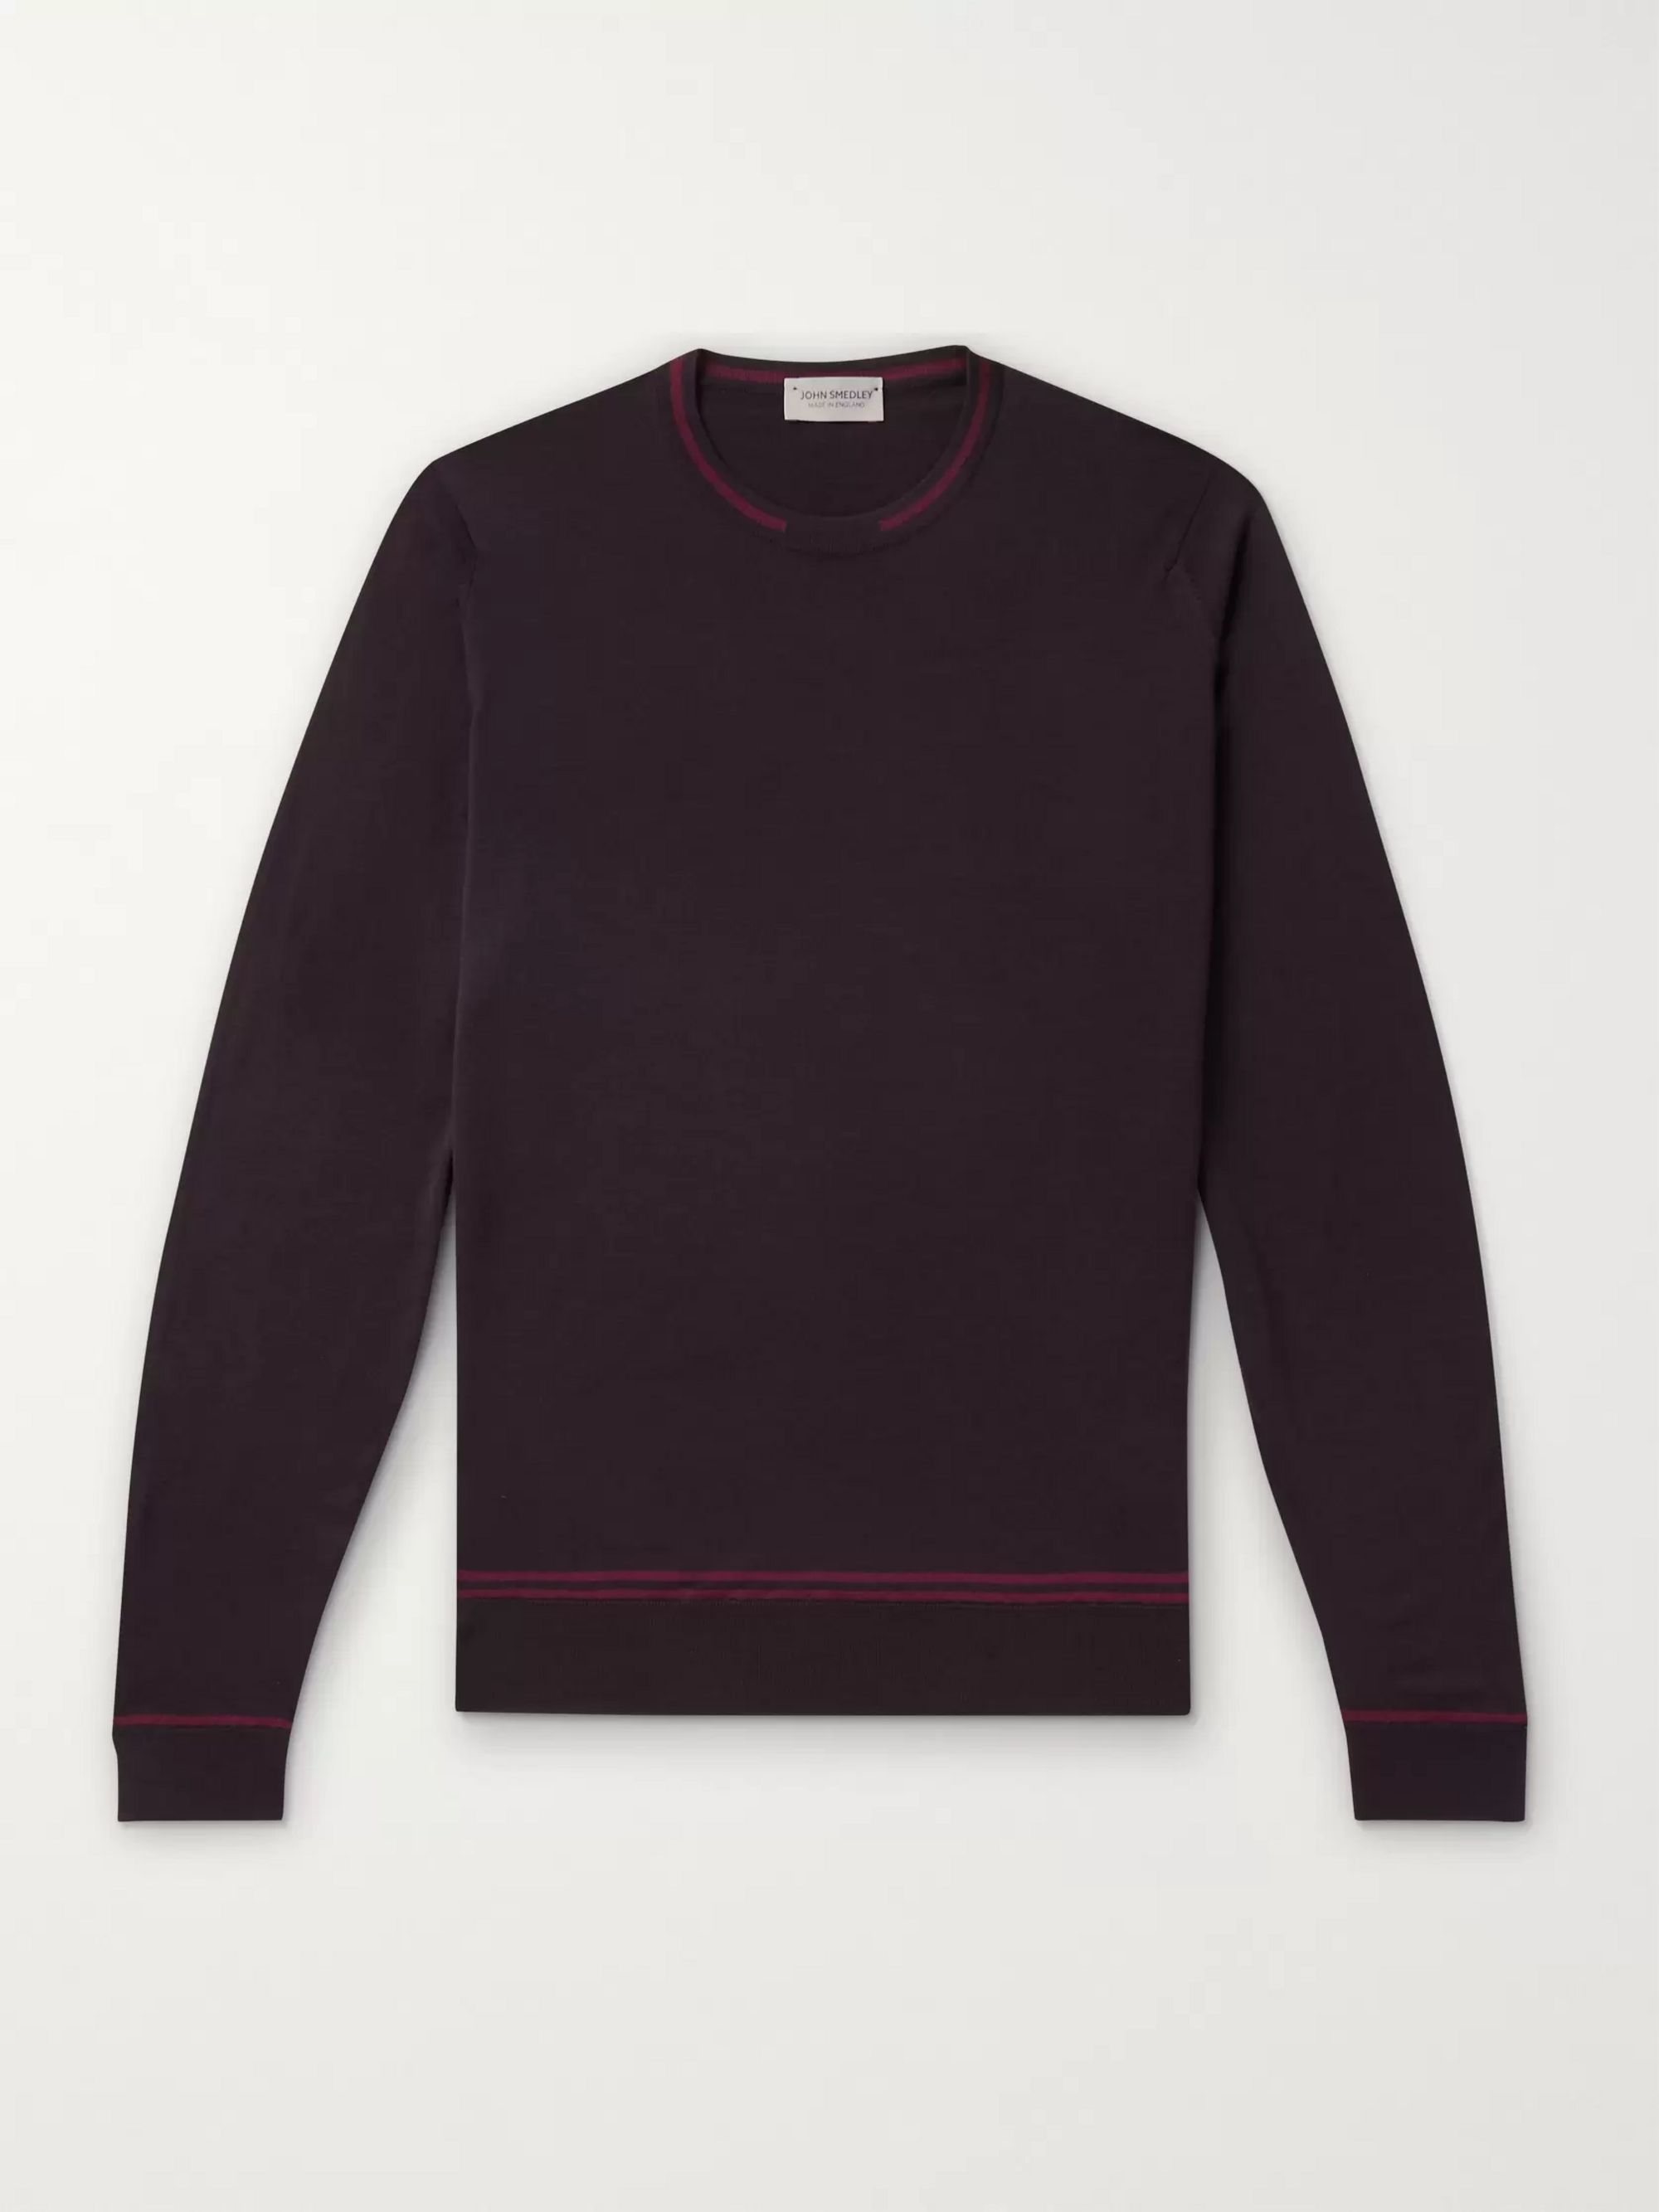 John Smedley Contrast-Tipped Merino Wool Sweater